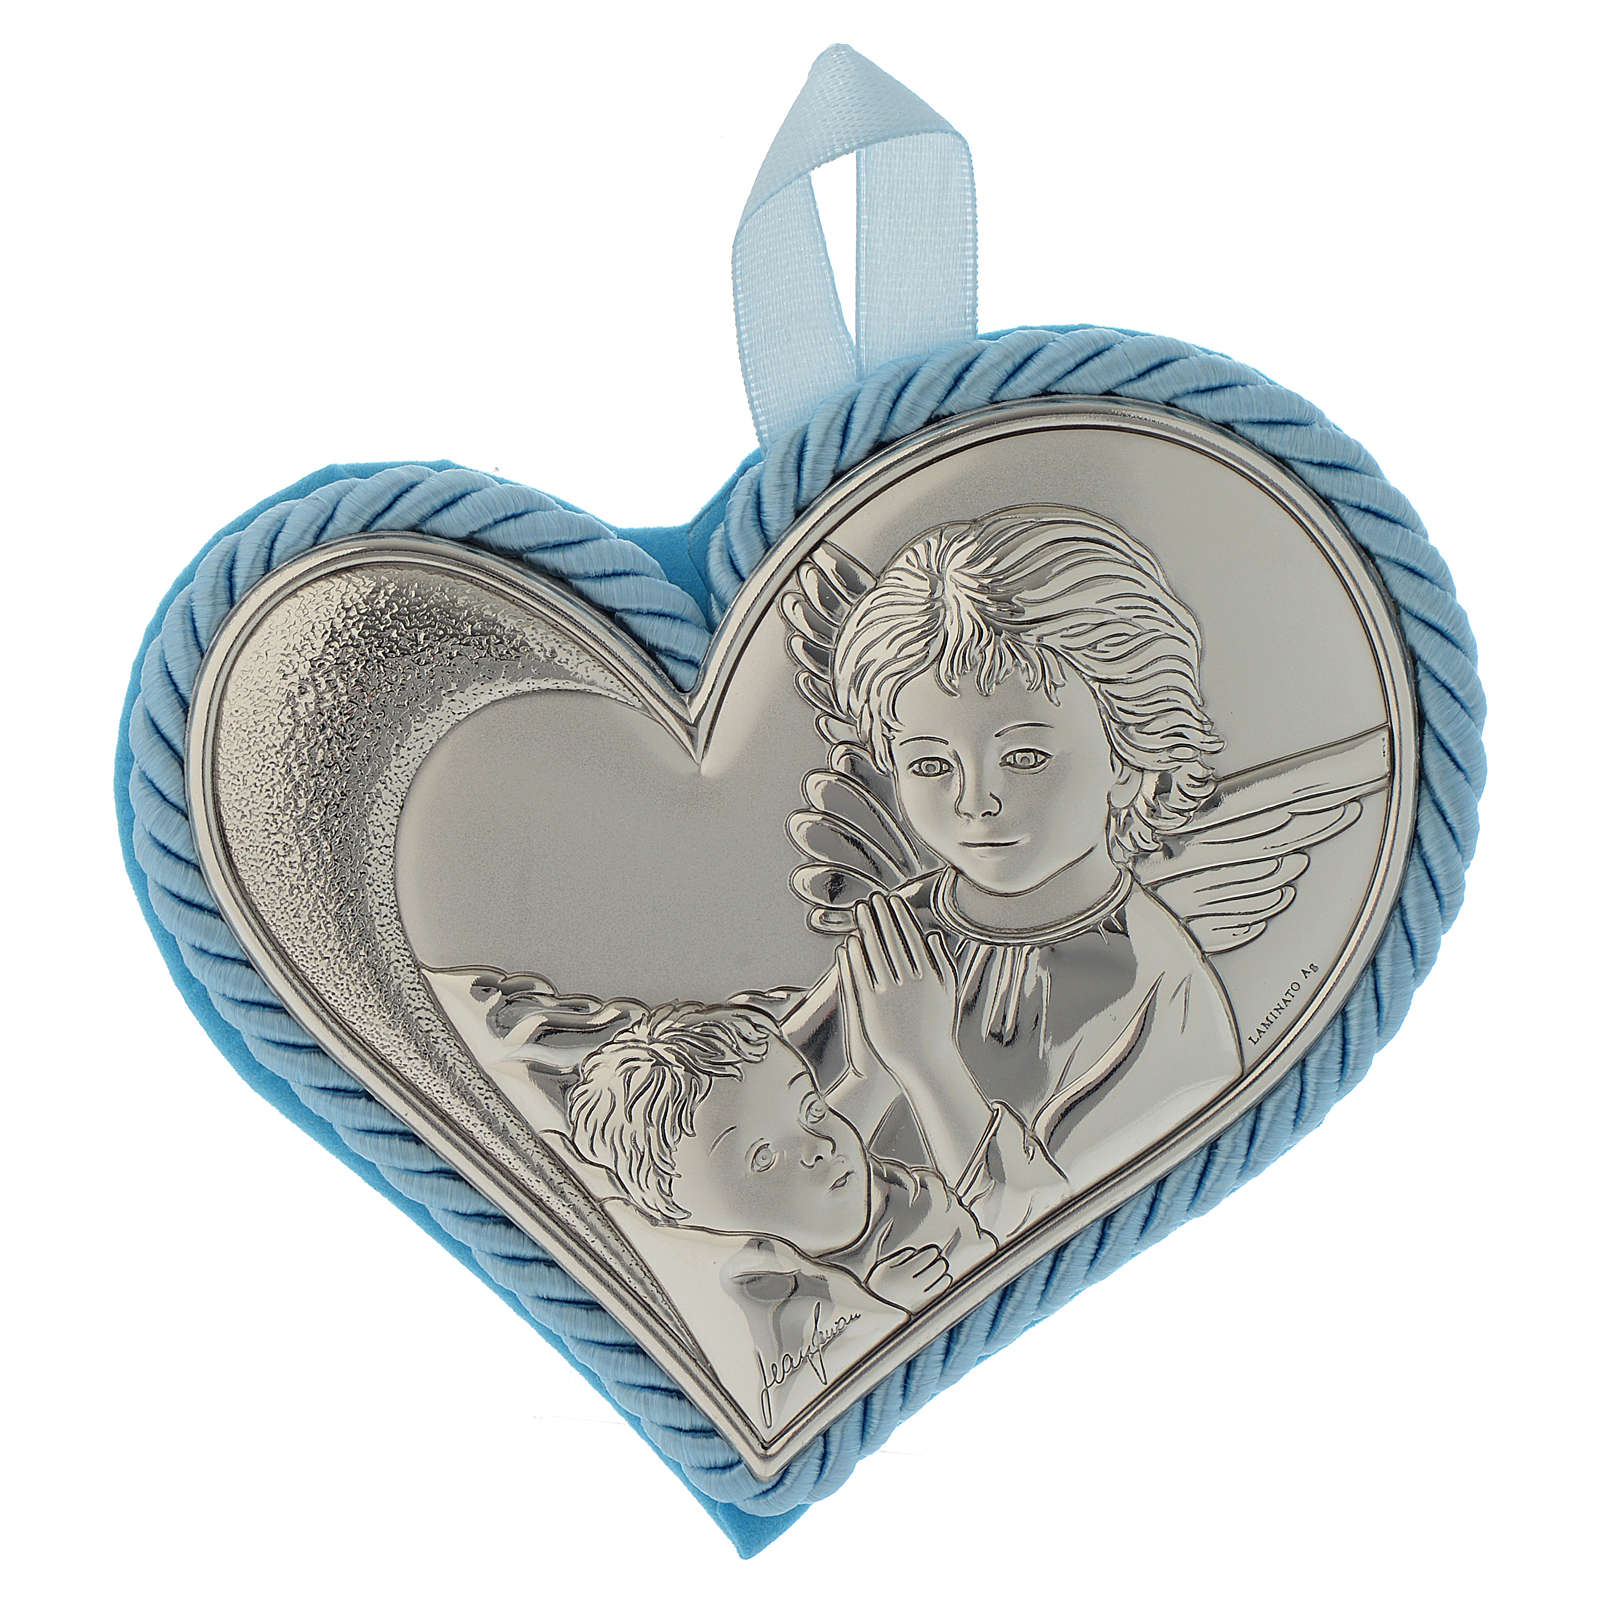 Crib toy with heart and silver plate with angel image and musical box pale blue colour 4